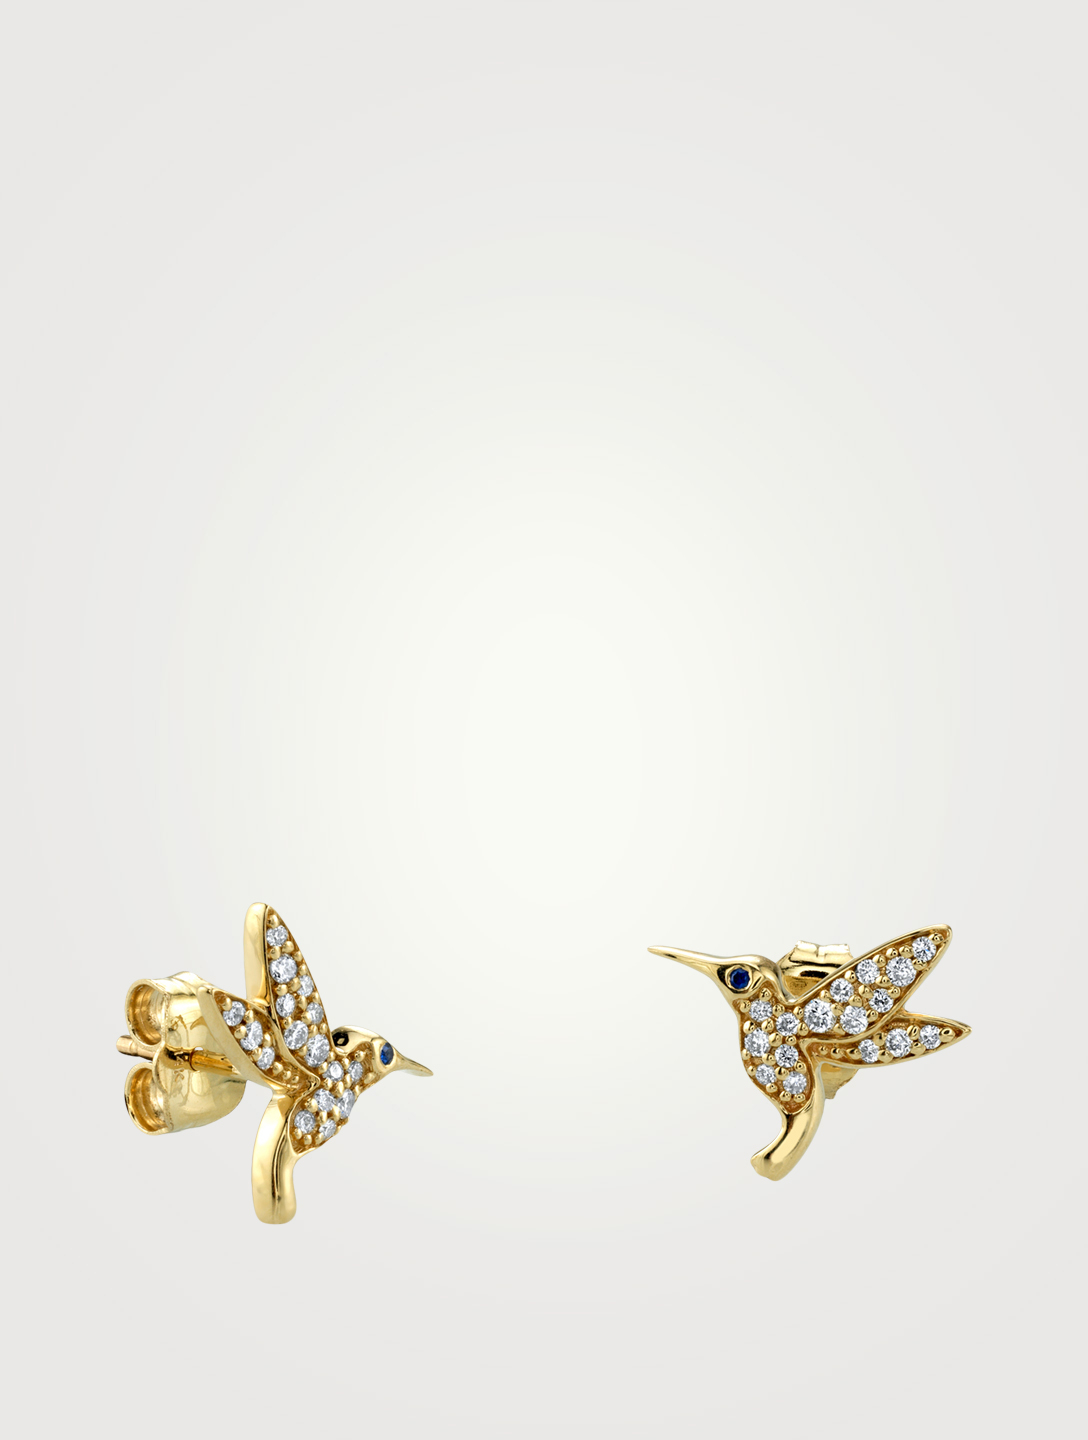 SYDNEY EVAN 14K Gold Hummingbird Earrings With Diamonds Women's Metallic